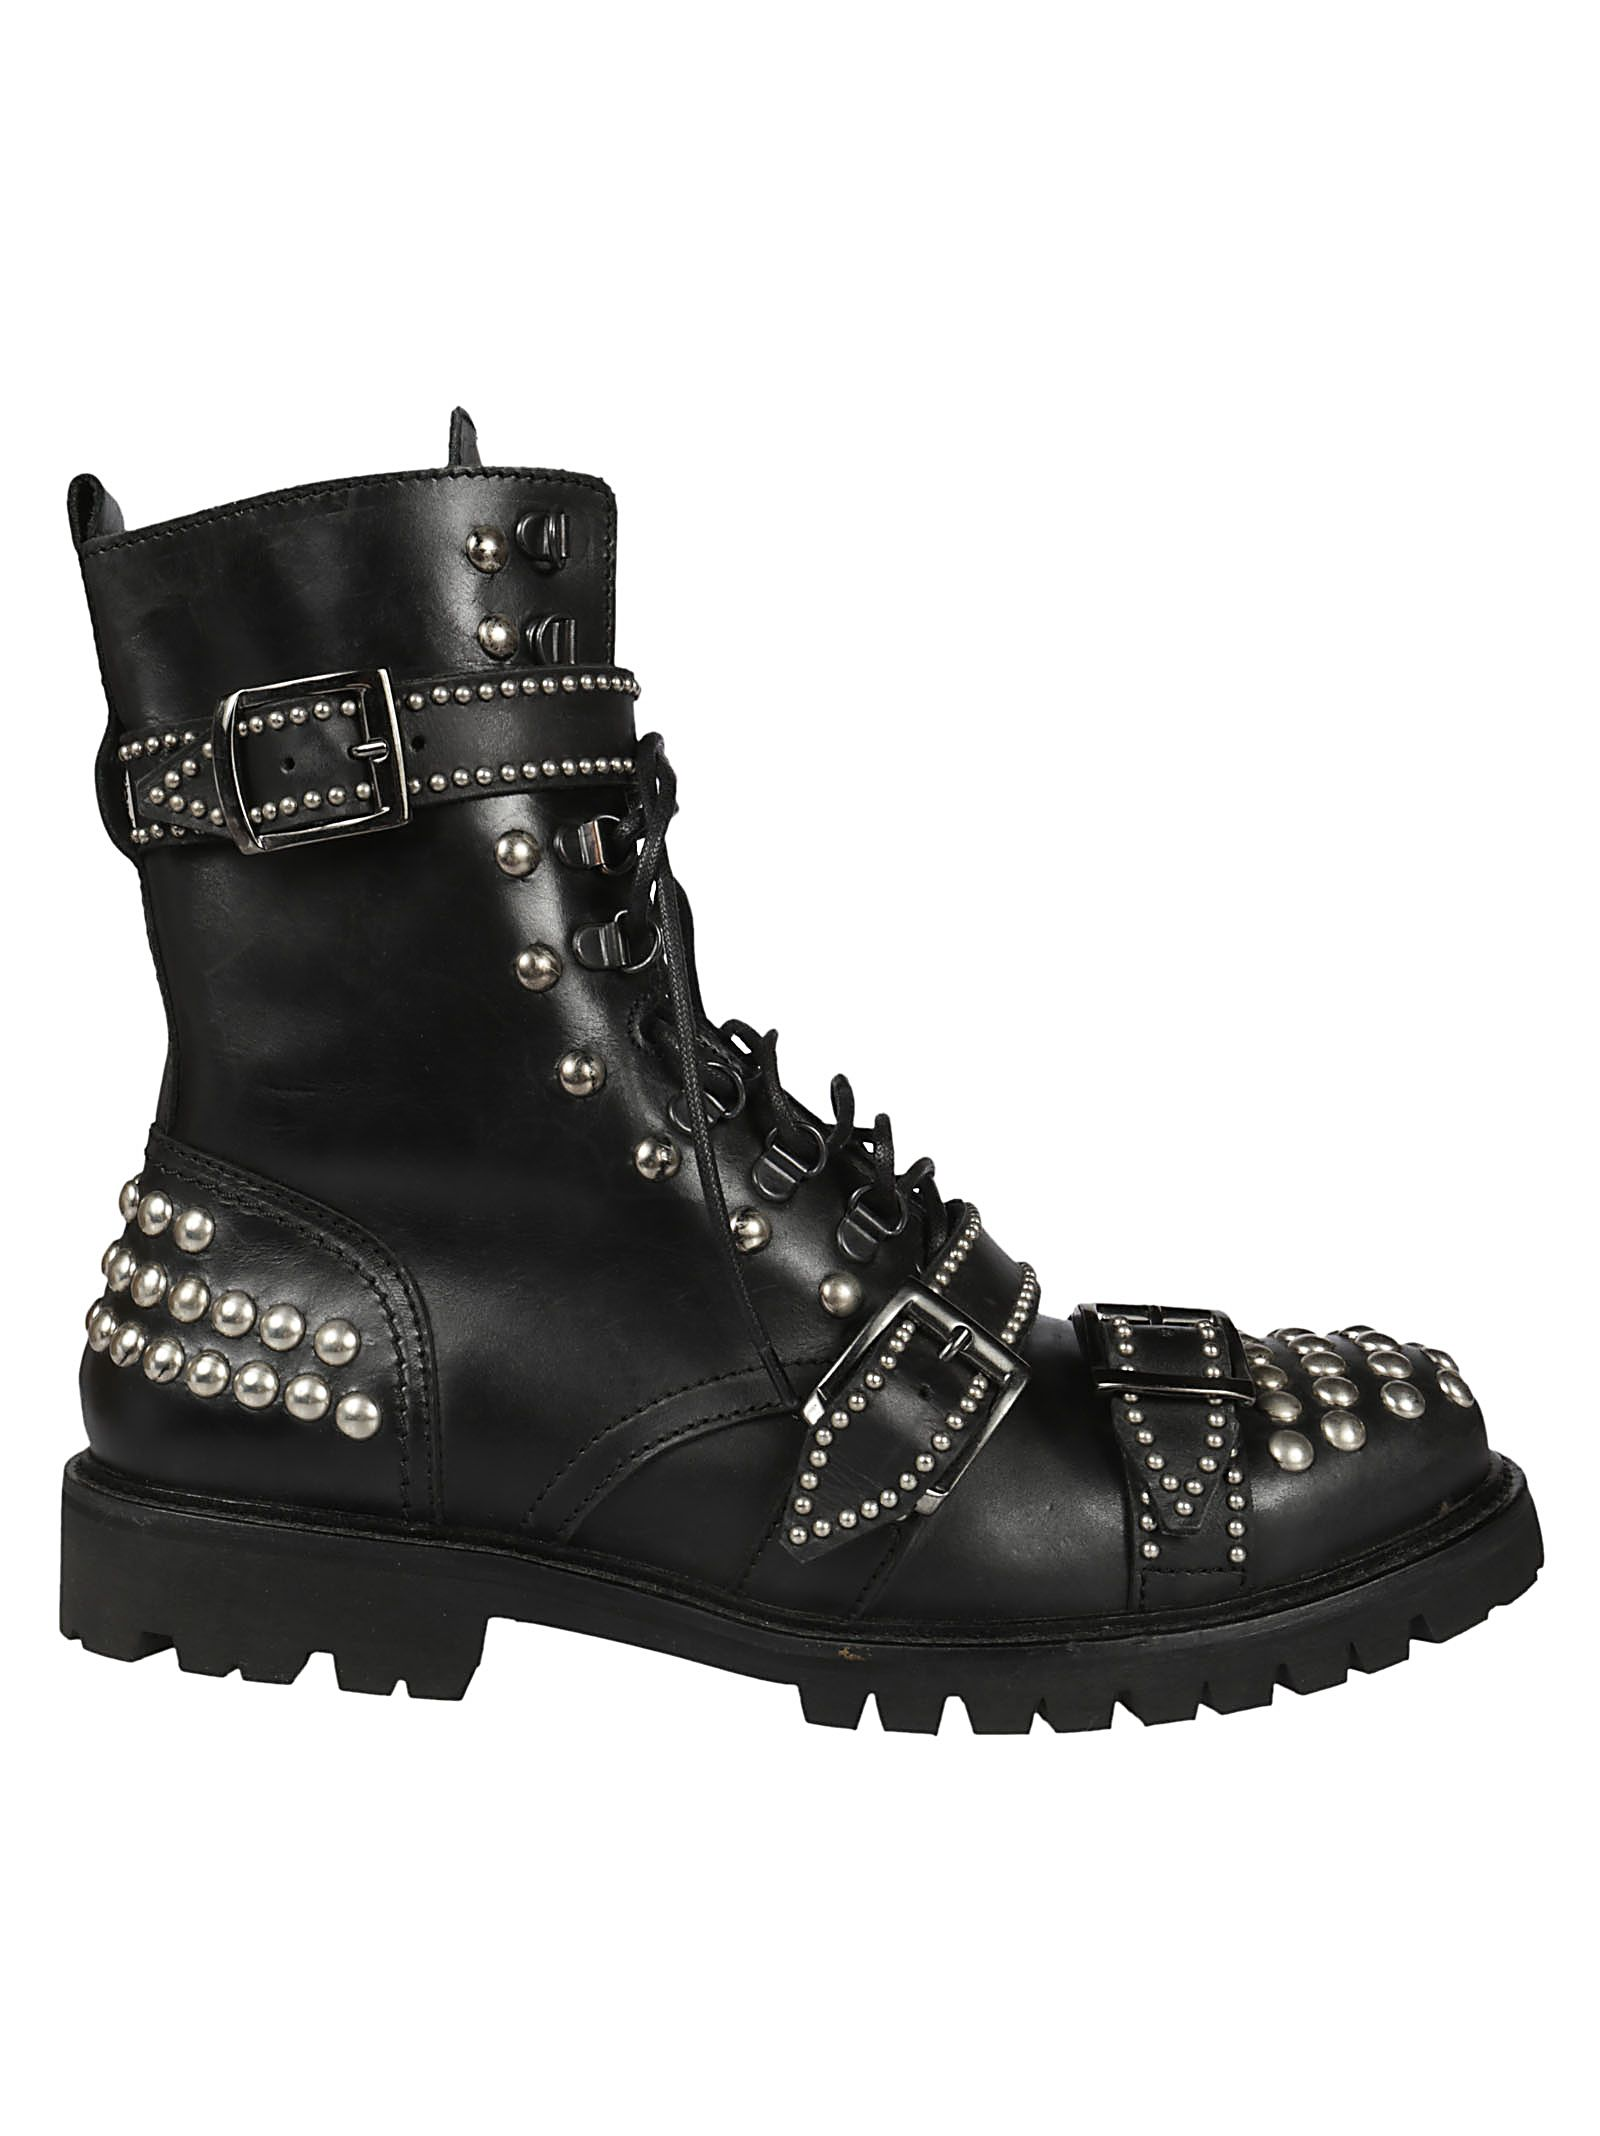 Christian Pellizzari Studded Ankle Boots